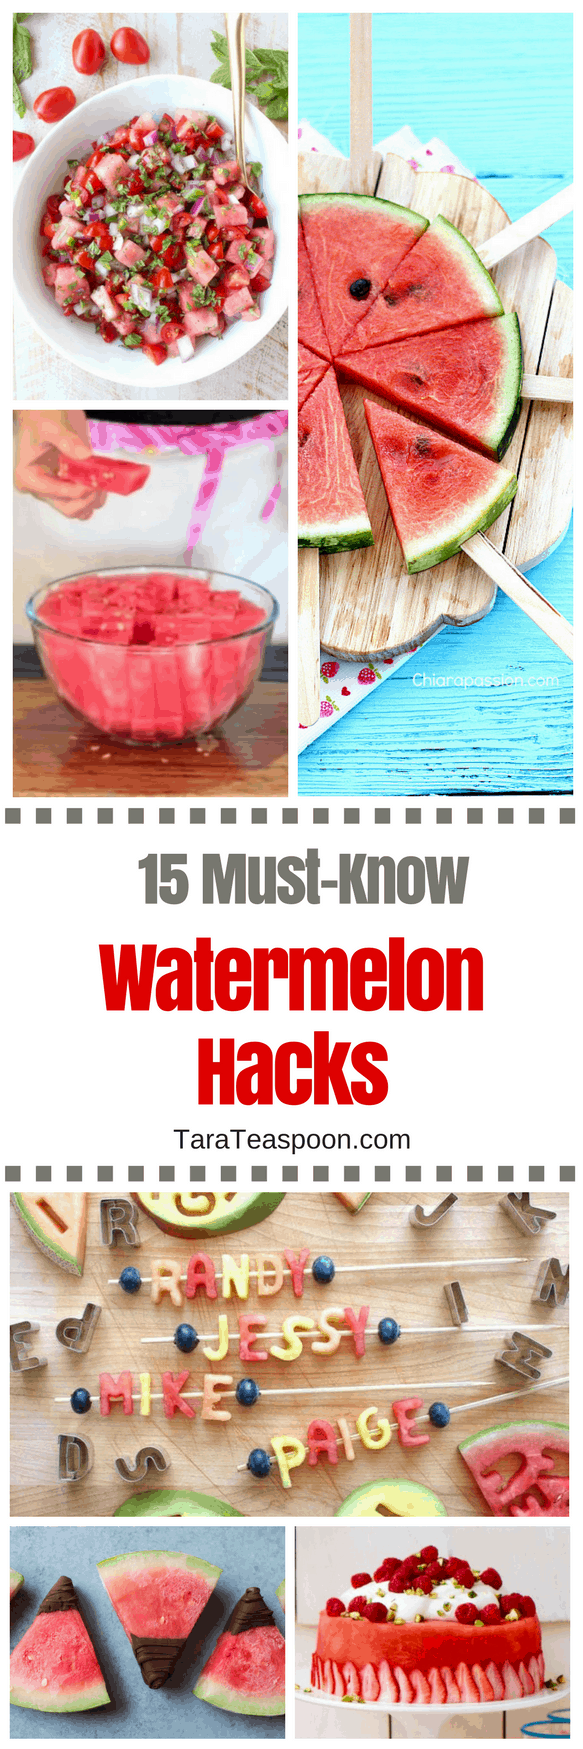 Watermelon is always the perfect summer treat, check out these 15 wonderful watermelon hacks that'll make your life easier and more delicious!